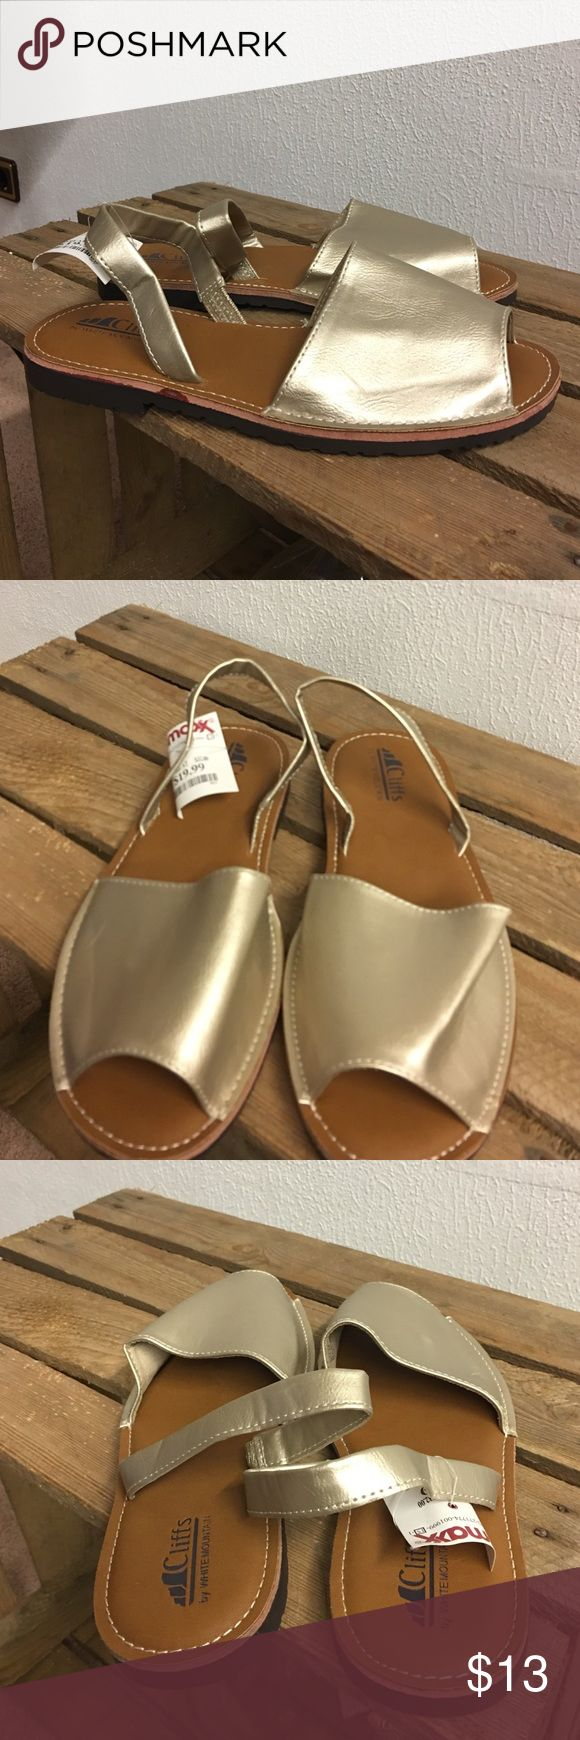 Open toe sandals Cliffs by White Mountain open ties sling back sandals, gold NWT cliffs Shoes Sandals